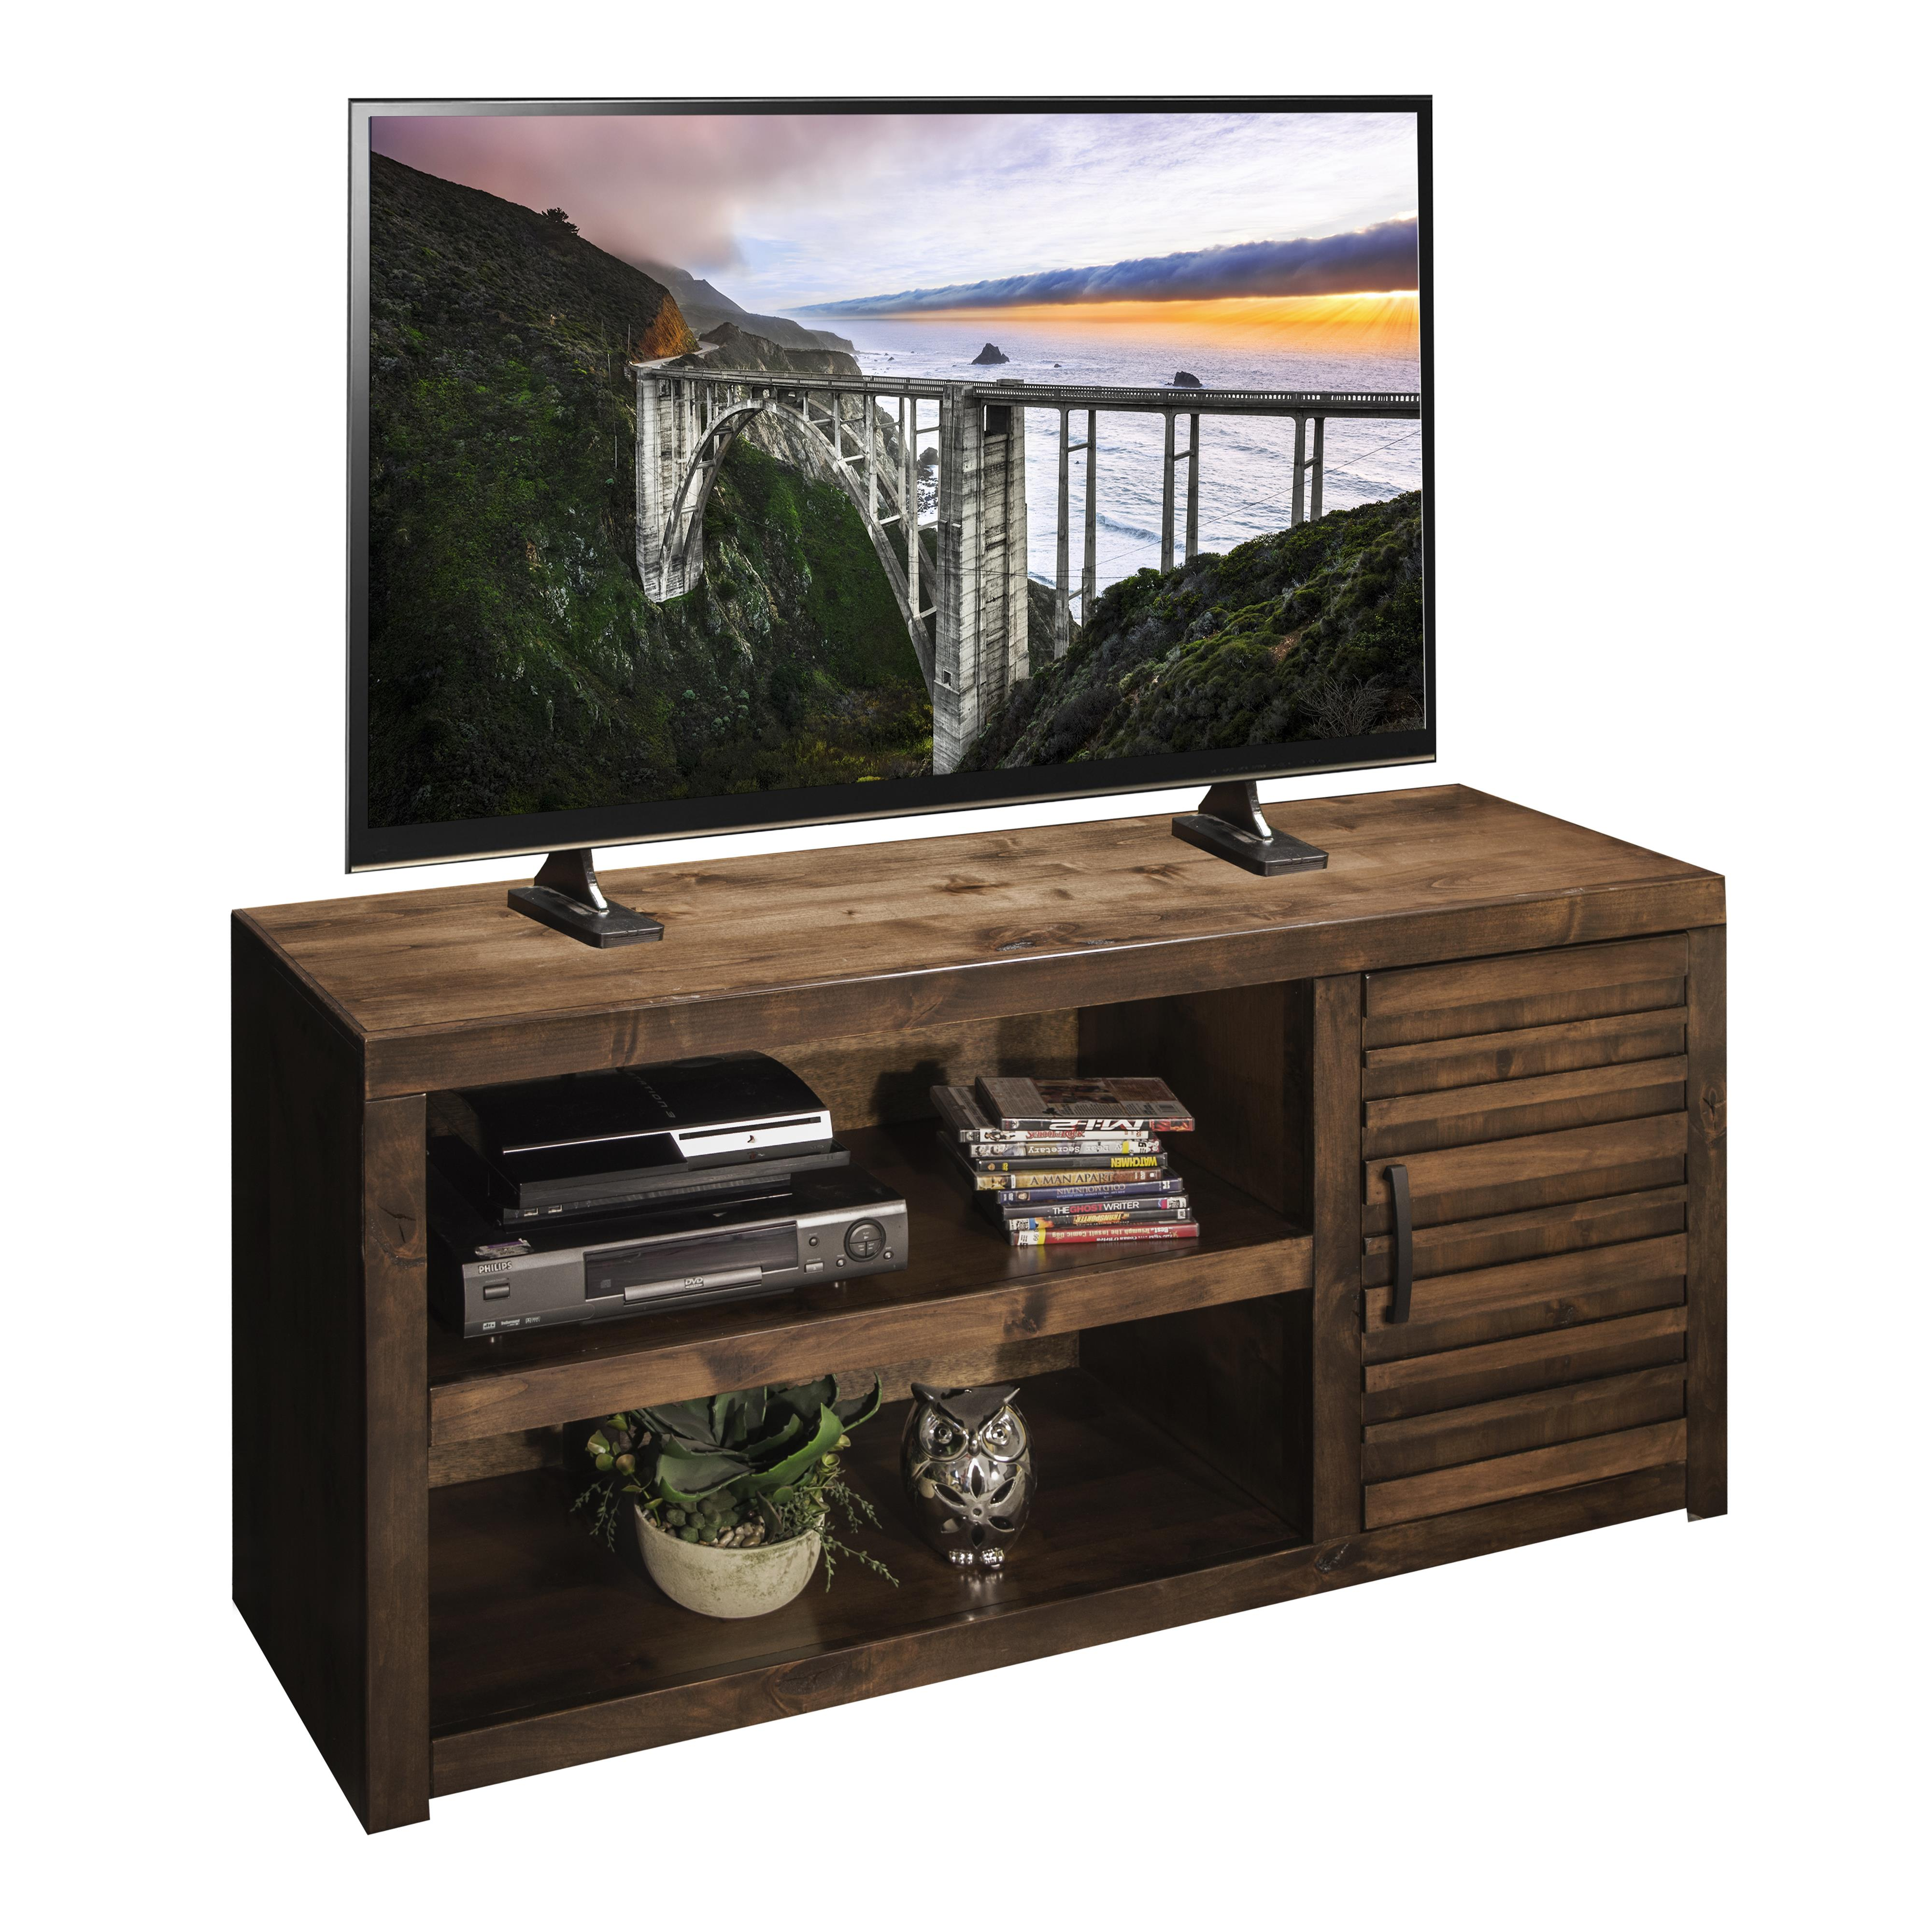 "Legends Furniture Sausalito Collection Sausalito 59"" TV Console - Item Number: SL1213-WKY"